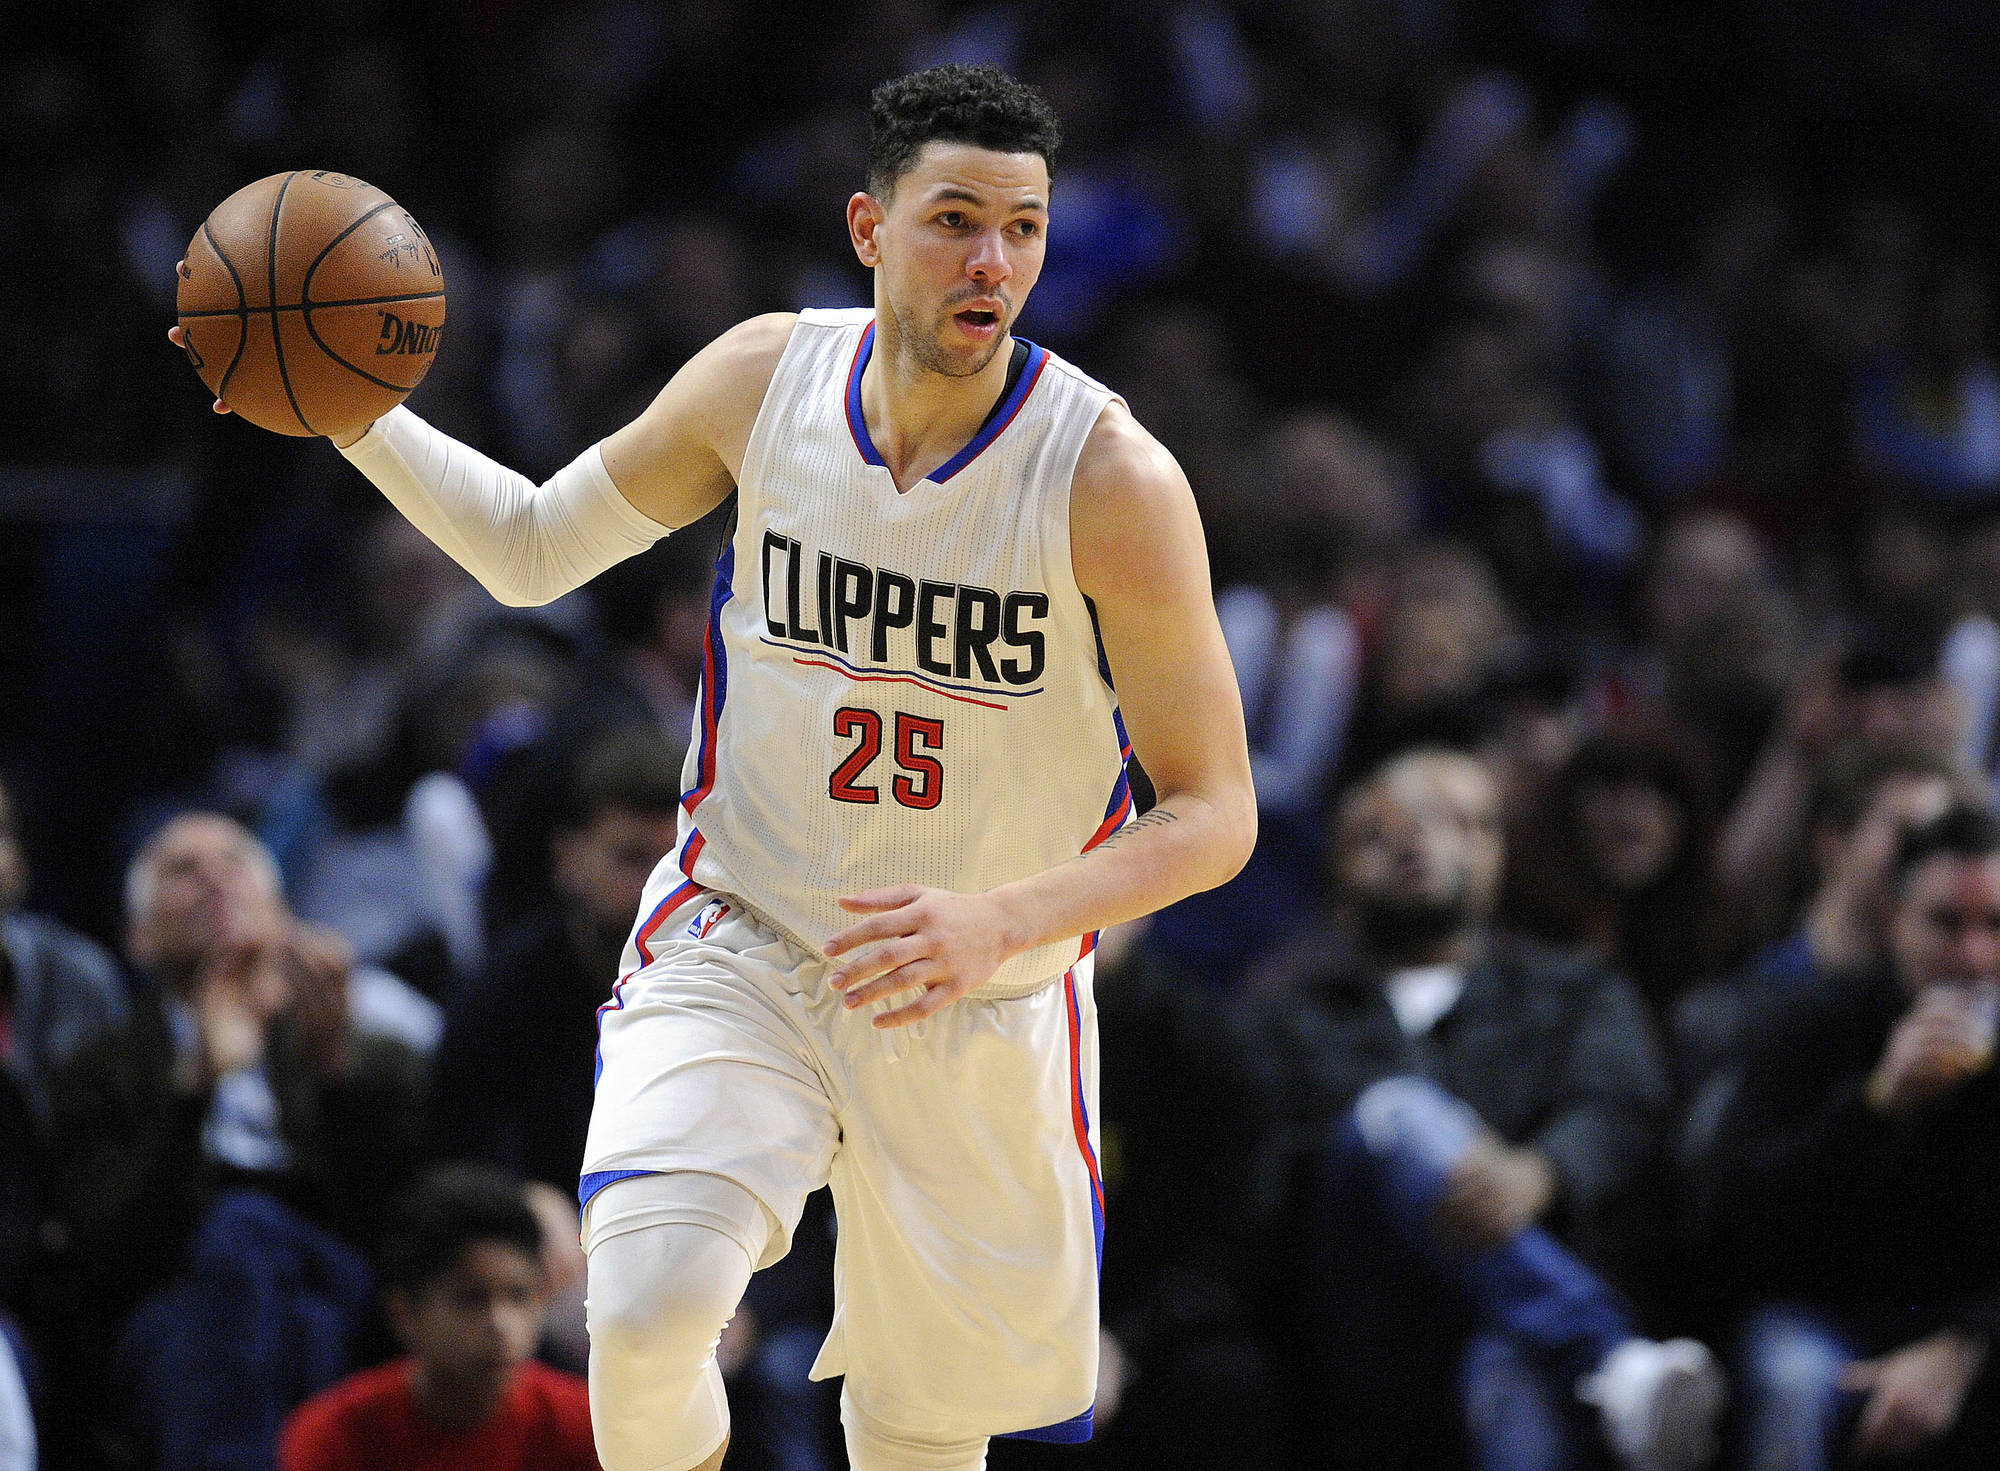 Must get Austin Rivers now!